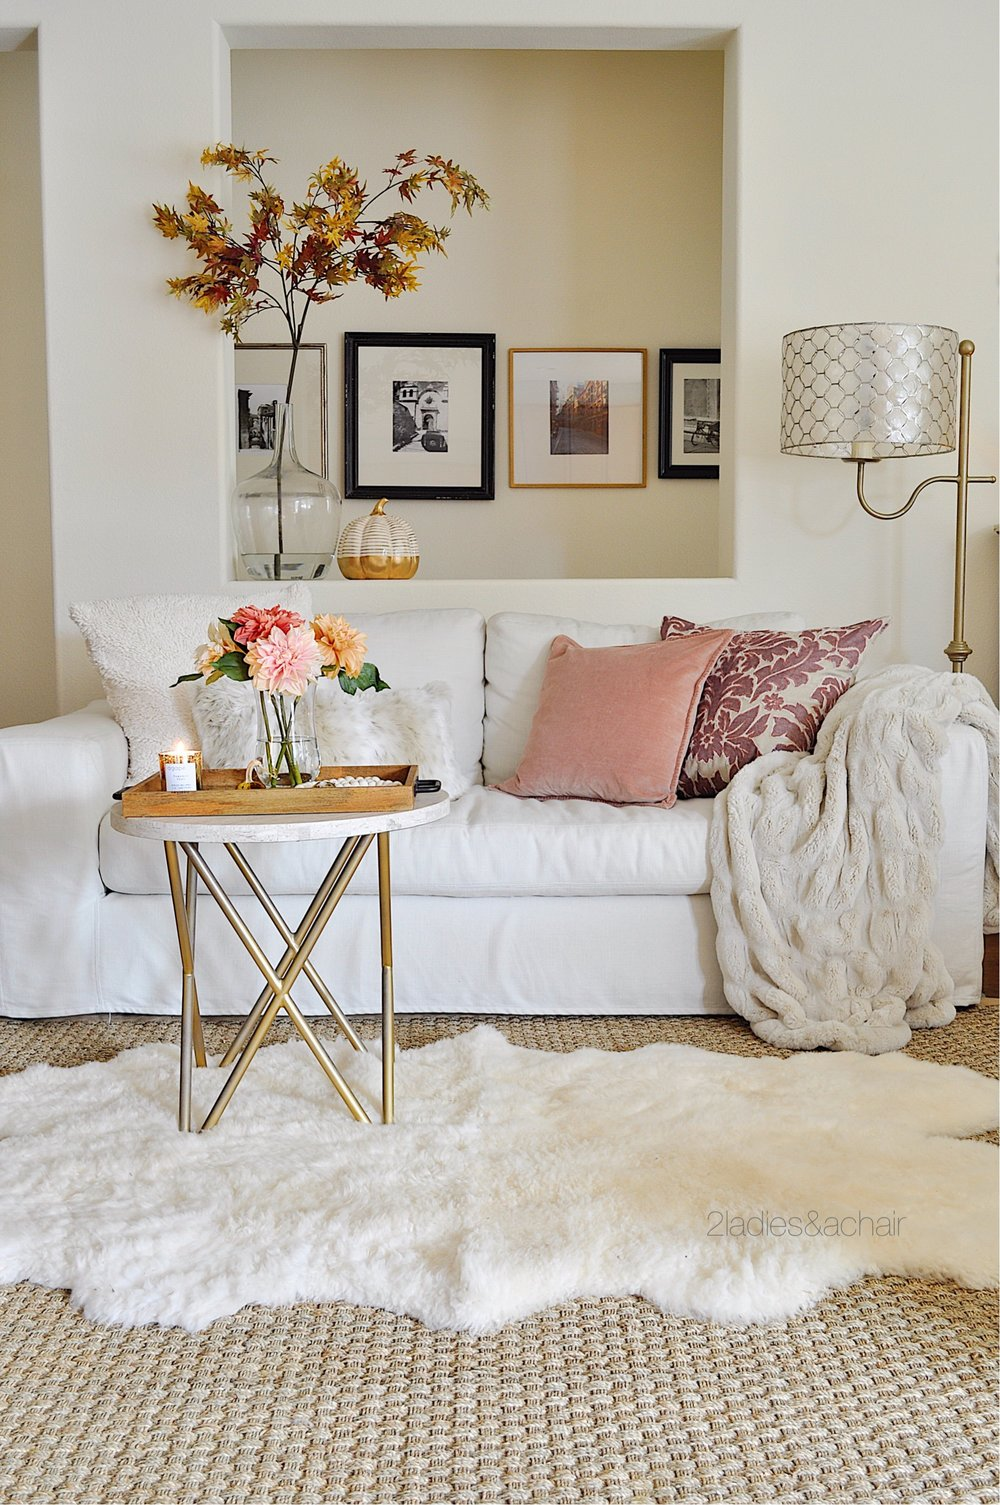 tips for creating a stylish home IMG_9455.JPG